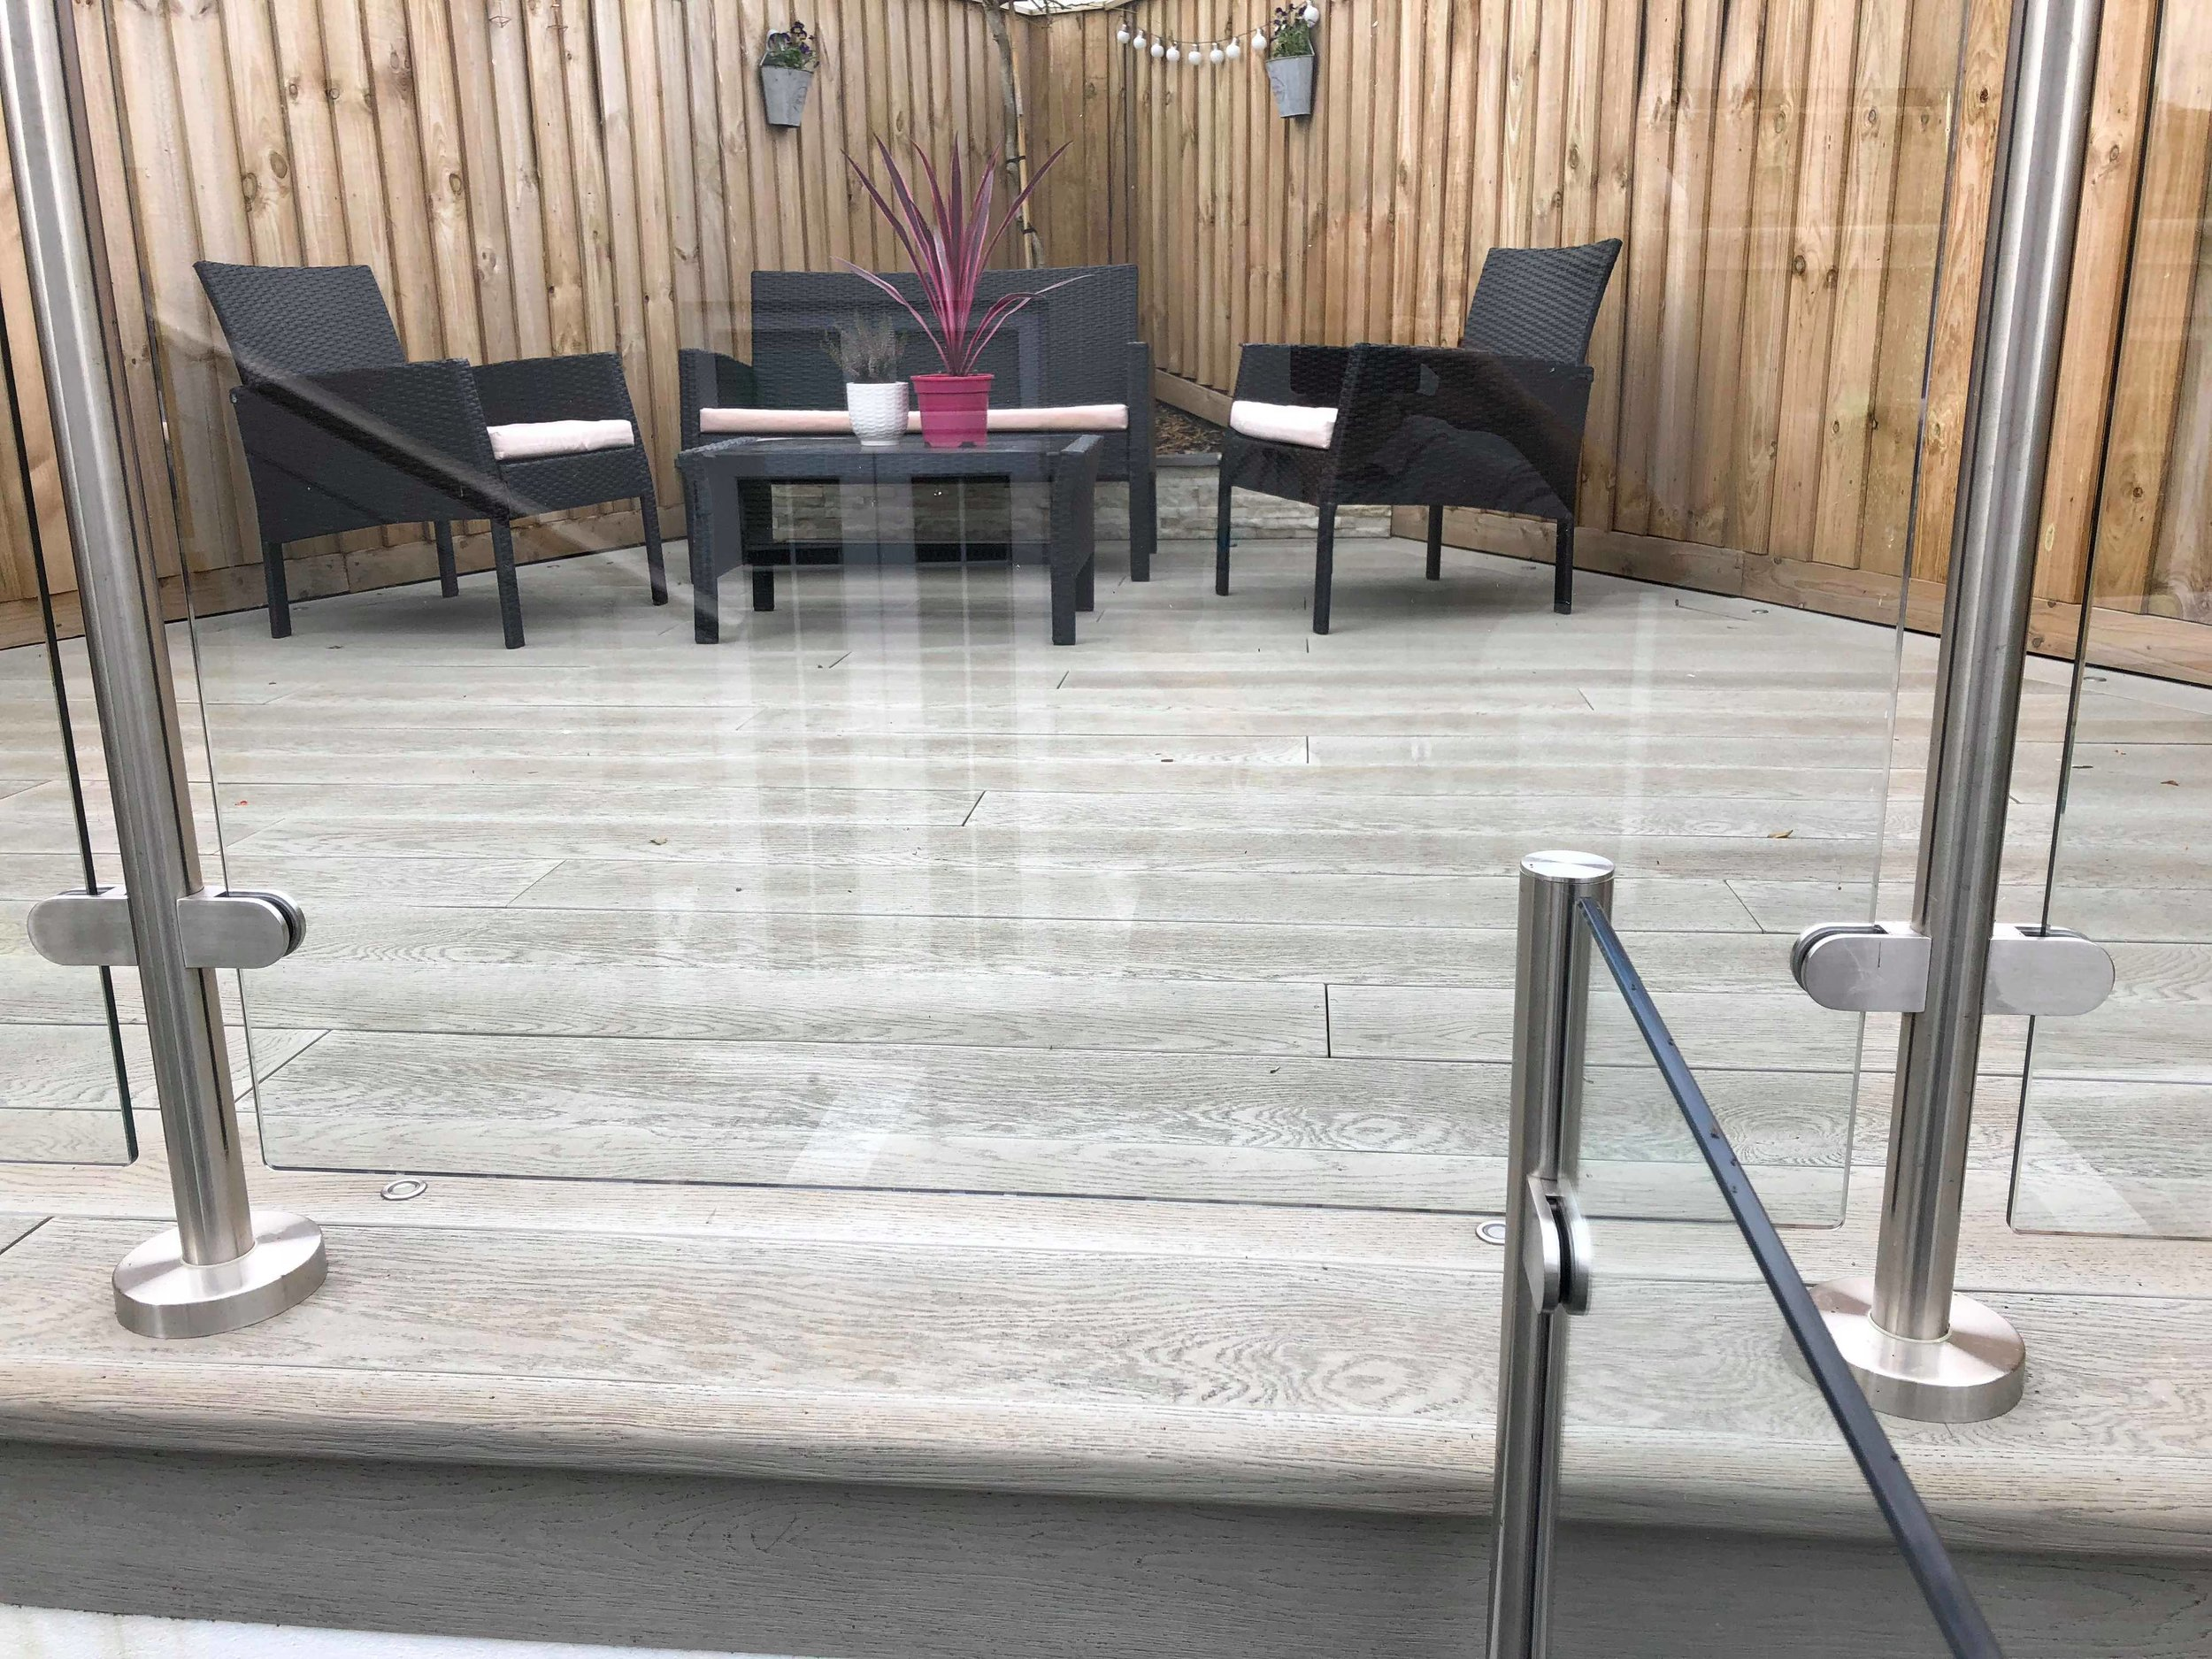 MILLBOARD DECKING - Millboard is a stunning hand finished ultra low maintenance non slip,non rotting composite decking that looks like real wood unlike most of the composite decking products on the market Millboard is even made in the Uk .Mian are are registered Millboard Approved Installer the scheme was set up by millboard to give you reassurance that your project is delivered by highly-trained, competent team who have been awarded with approved installer certification status.for more information on Millboard products visit www.millboard.co.uk.